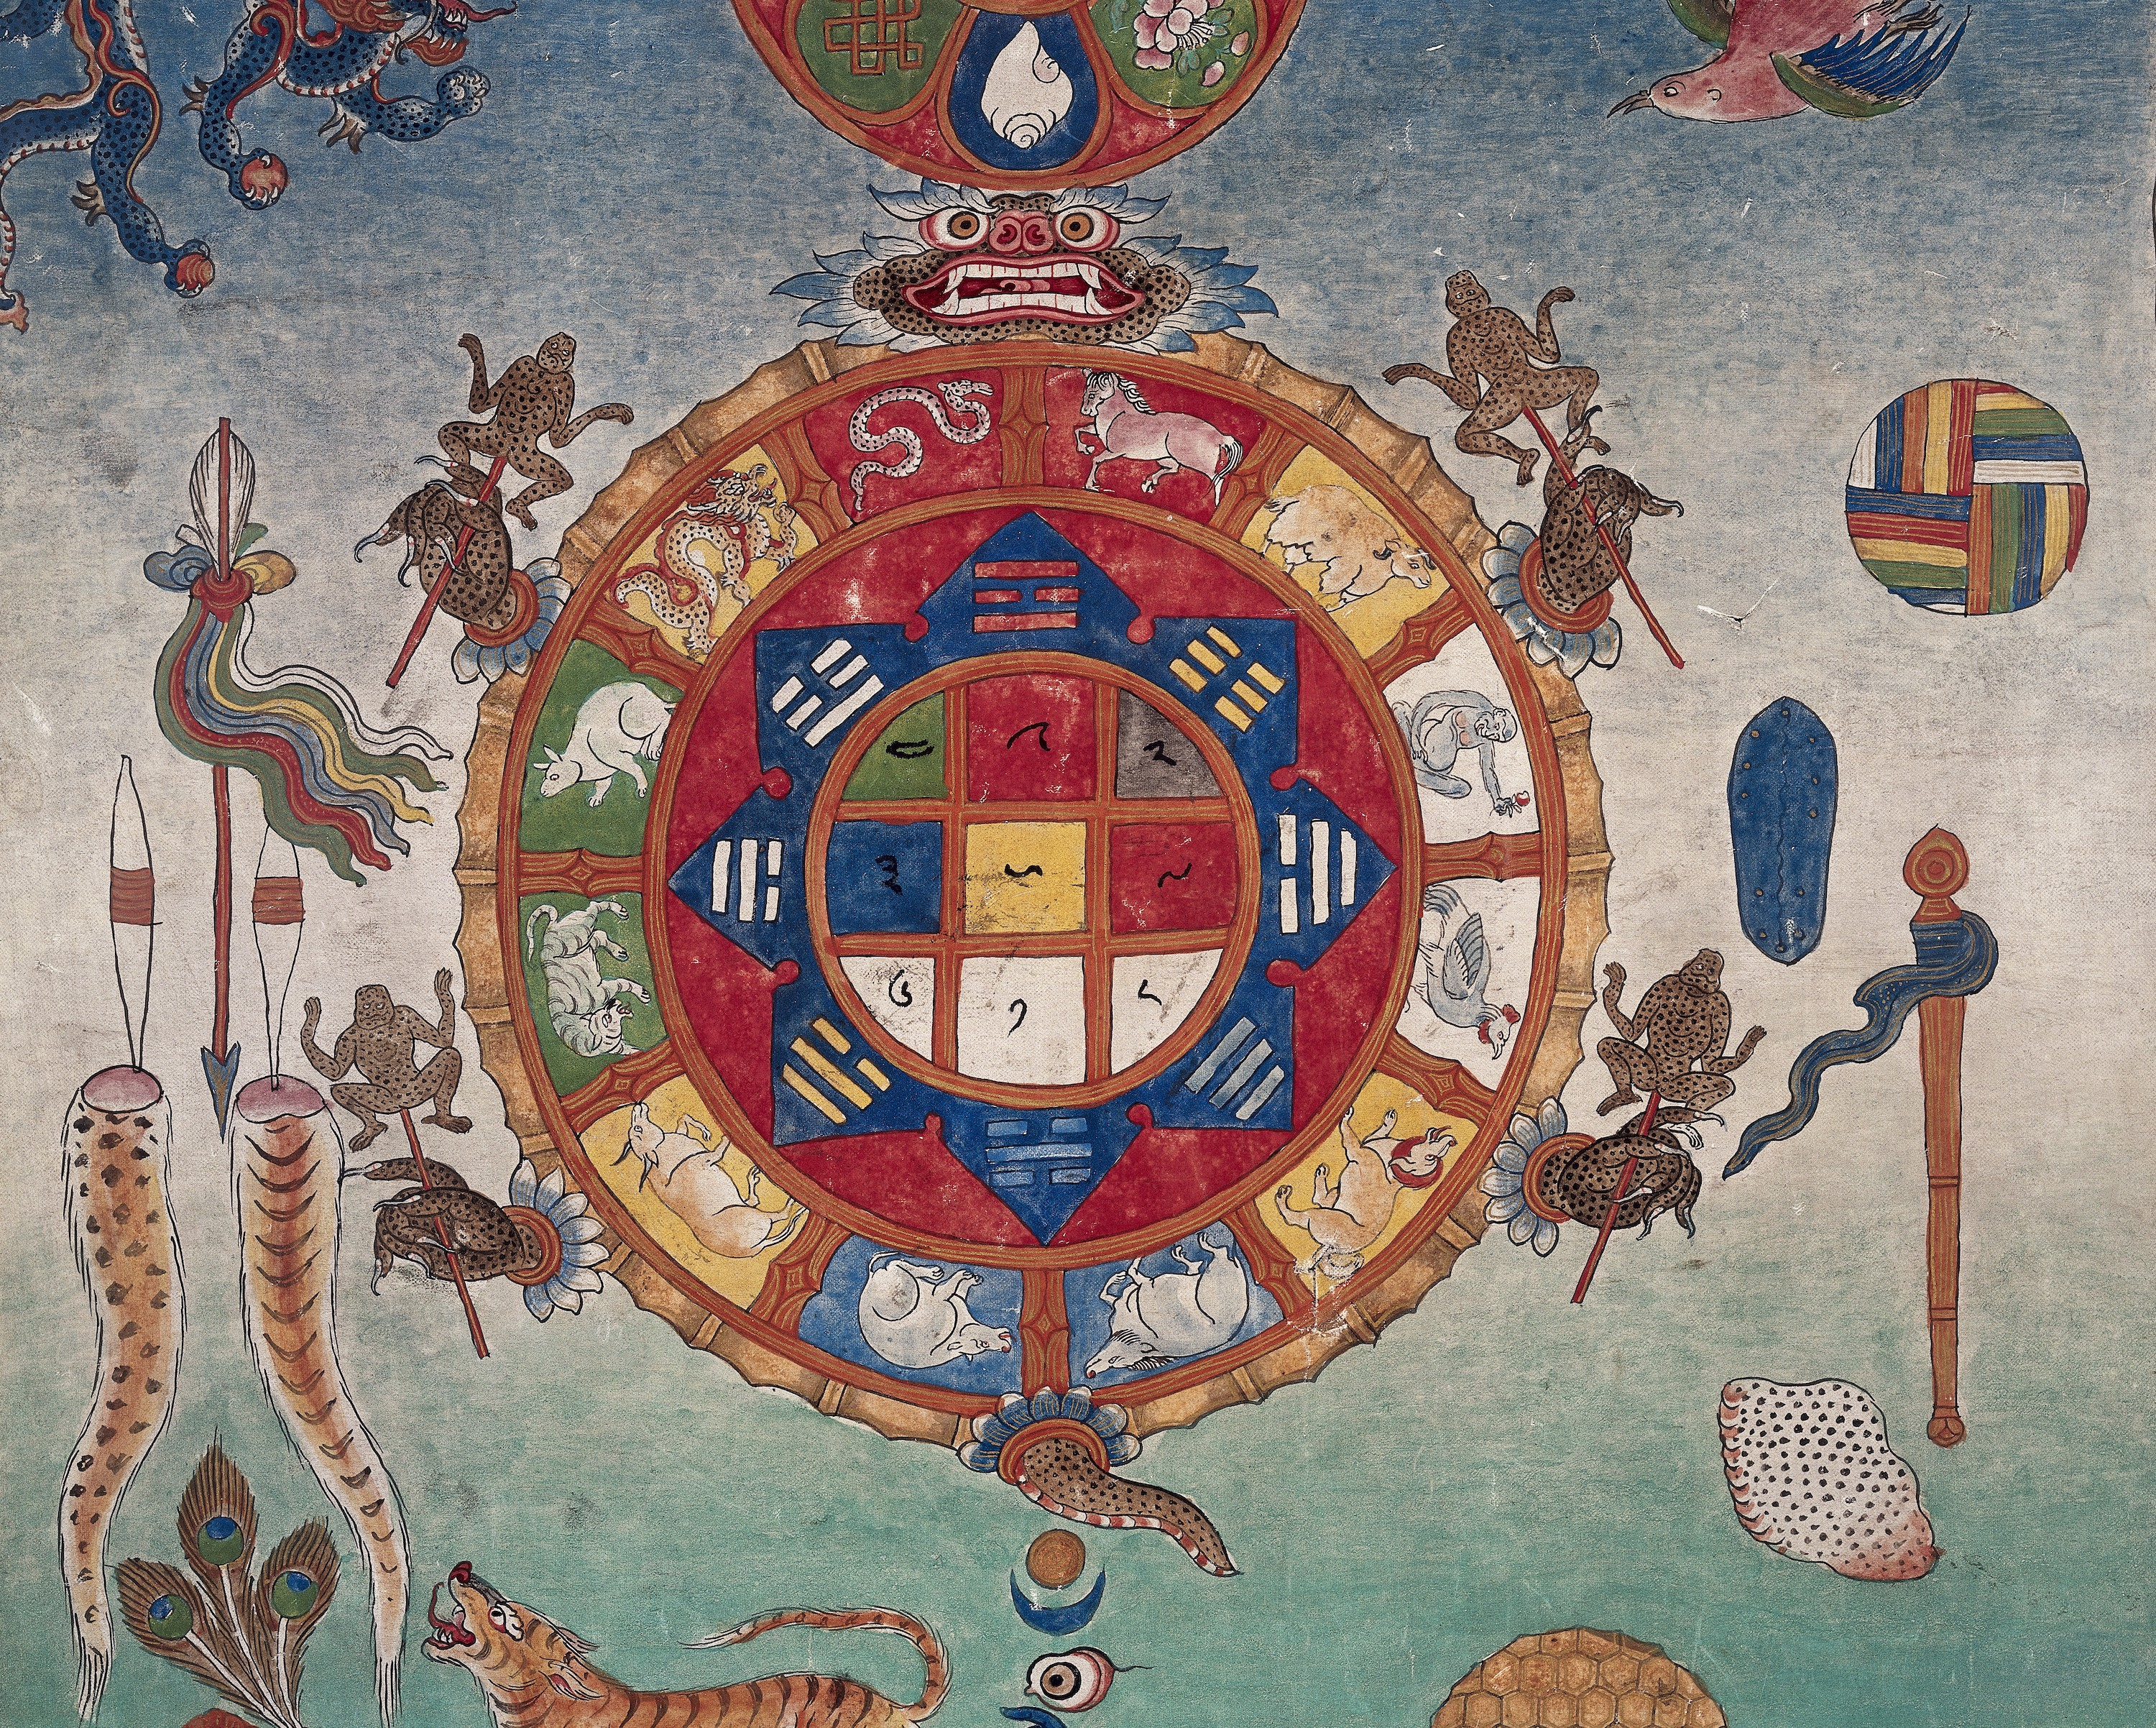 Tibetan Chart for Bloodletting based on the Luoshu Square,Attribution 4.0 International (CC BY 4.0)